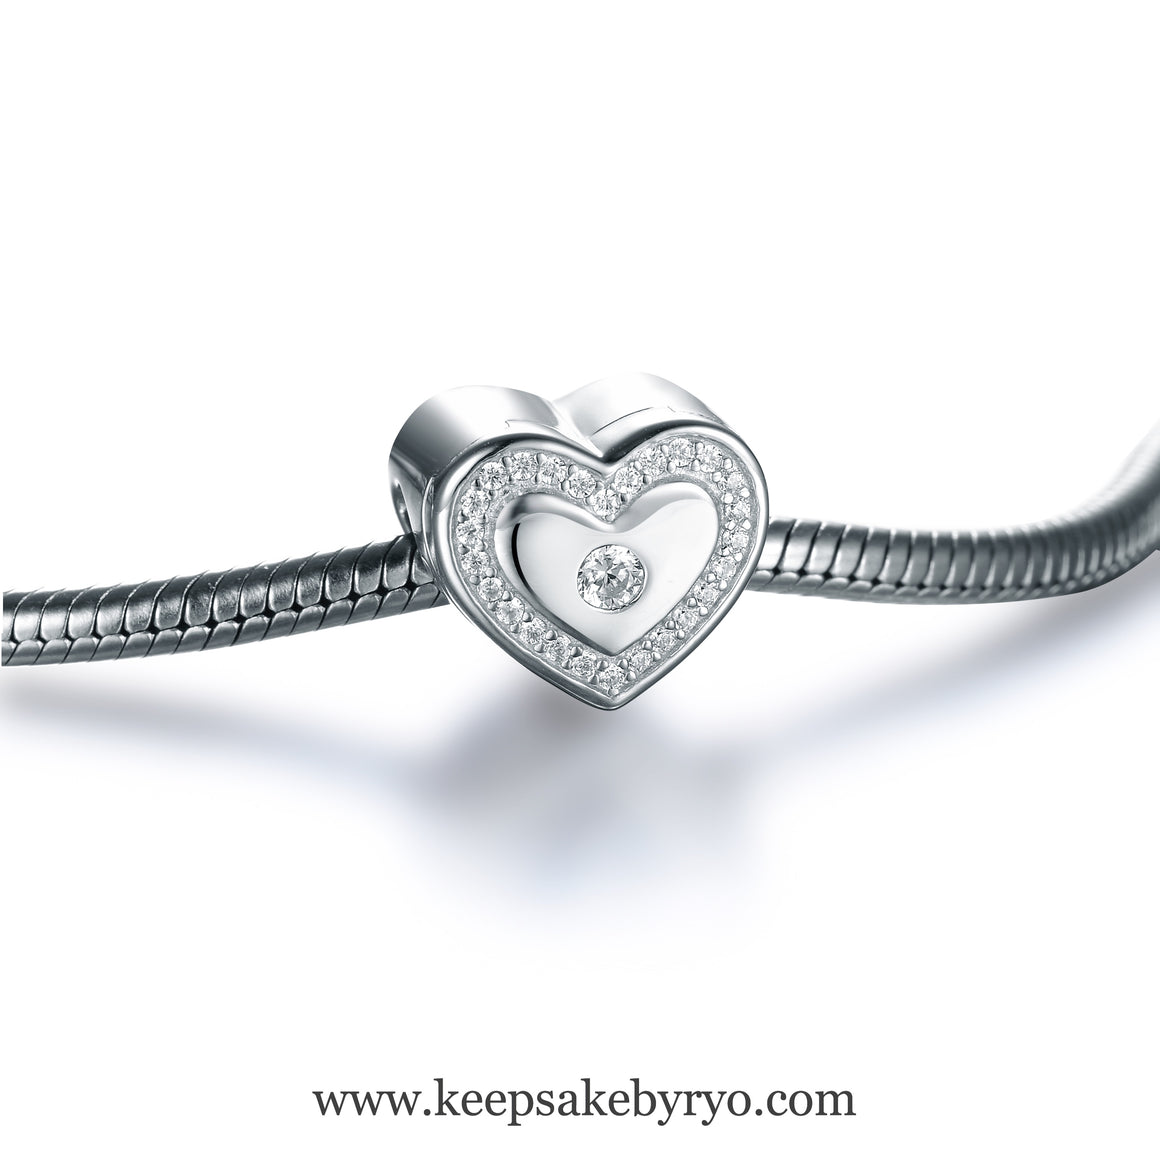 STERLING SILVER STUDDED HEART TREASURE CHEST CHARM